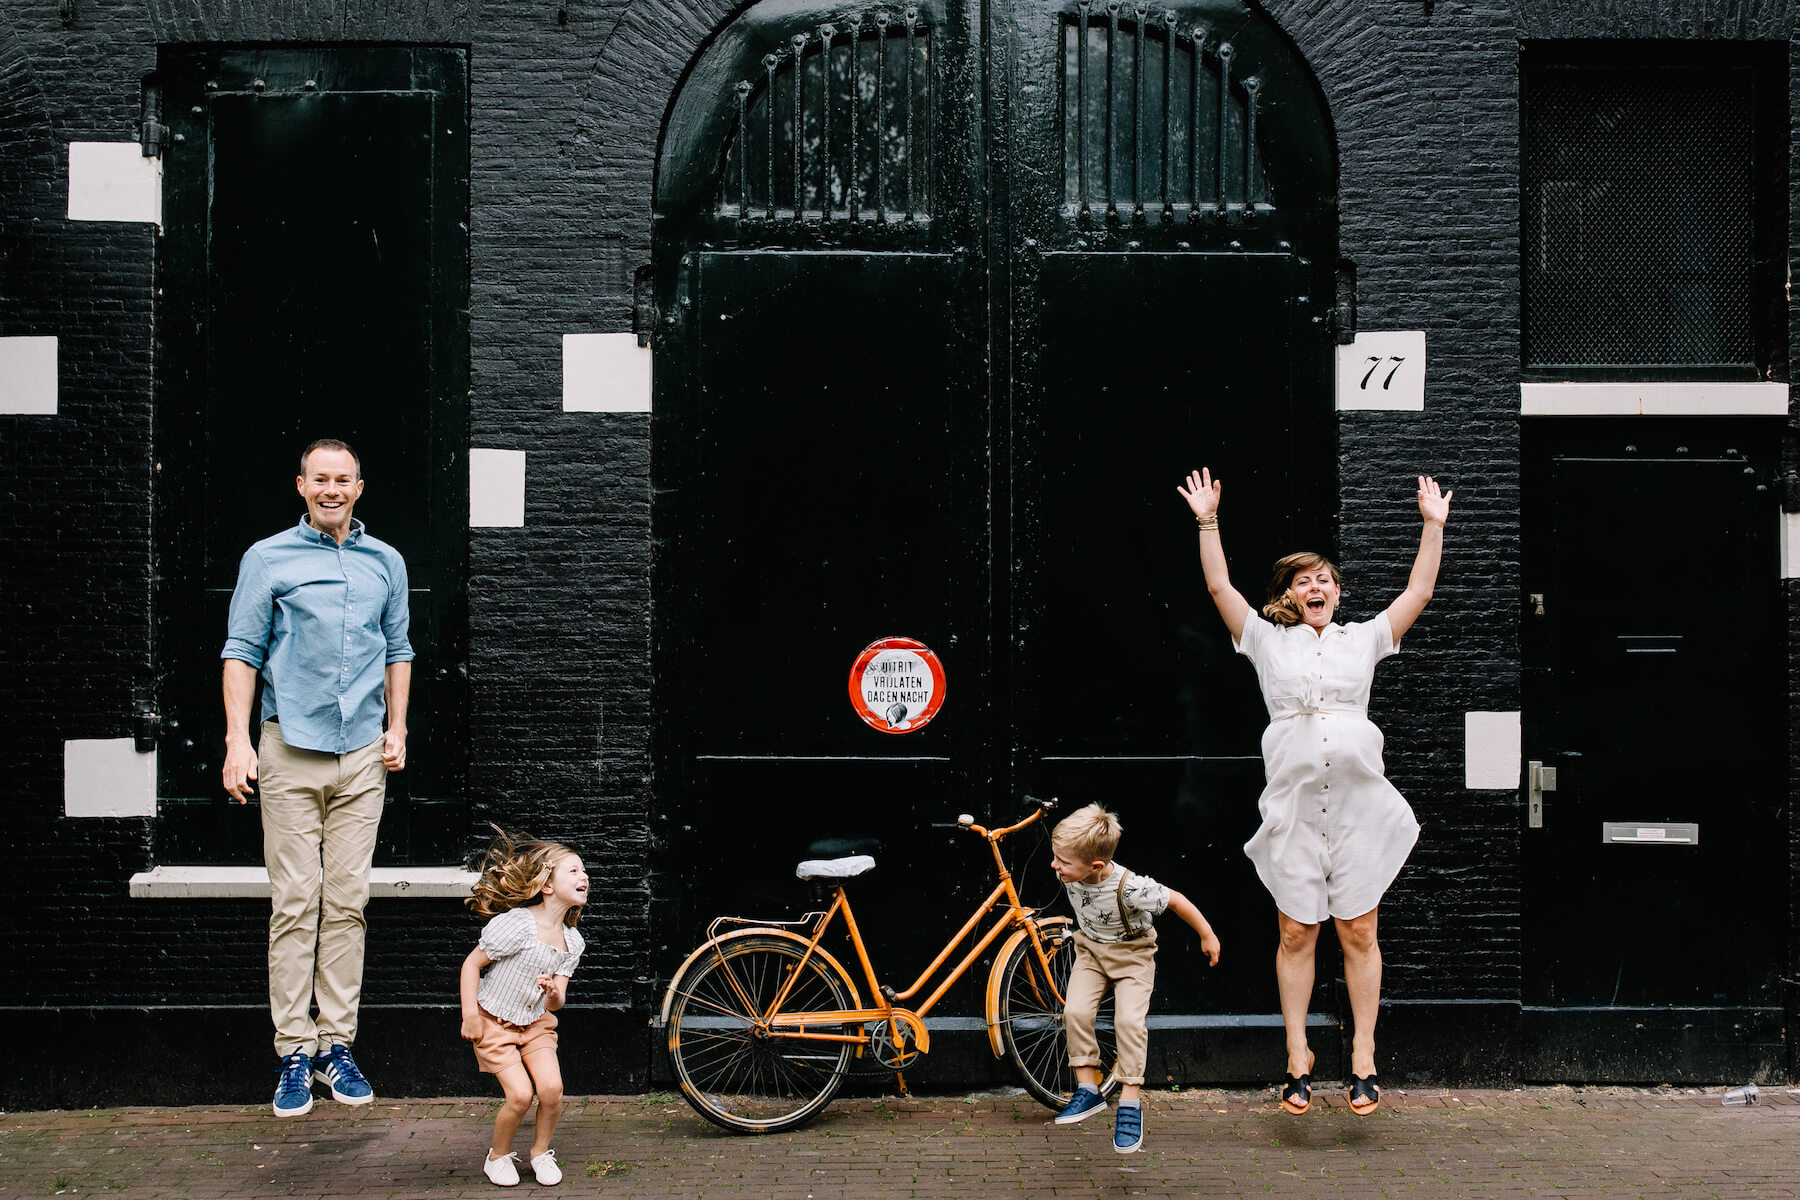 family of four jumping in front of a black building in Amsterdam, Netherlands